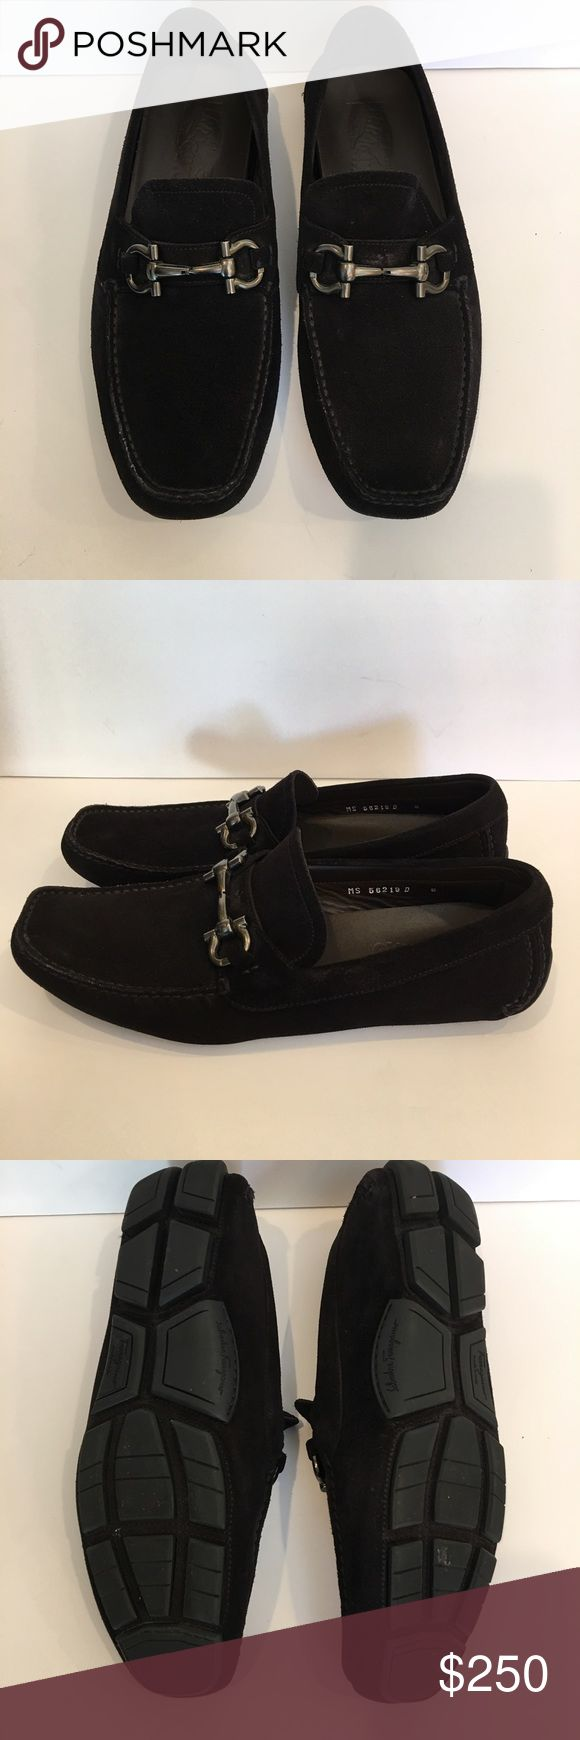 Men's Salvatore Ferragamo black suede loafers Black suede square toe loafers with gunmetal hardware. Very good condition. Salvatore Ferragamo Shoes Loafers & Slip-Ons